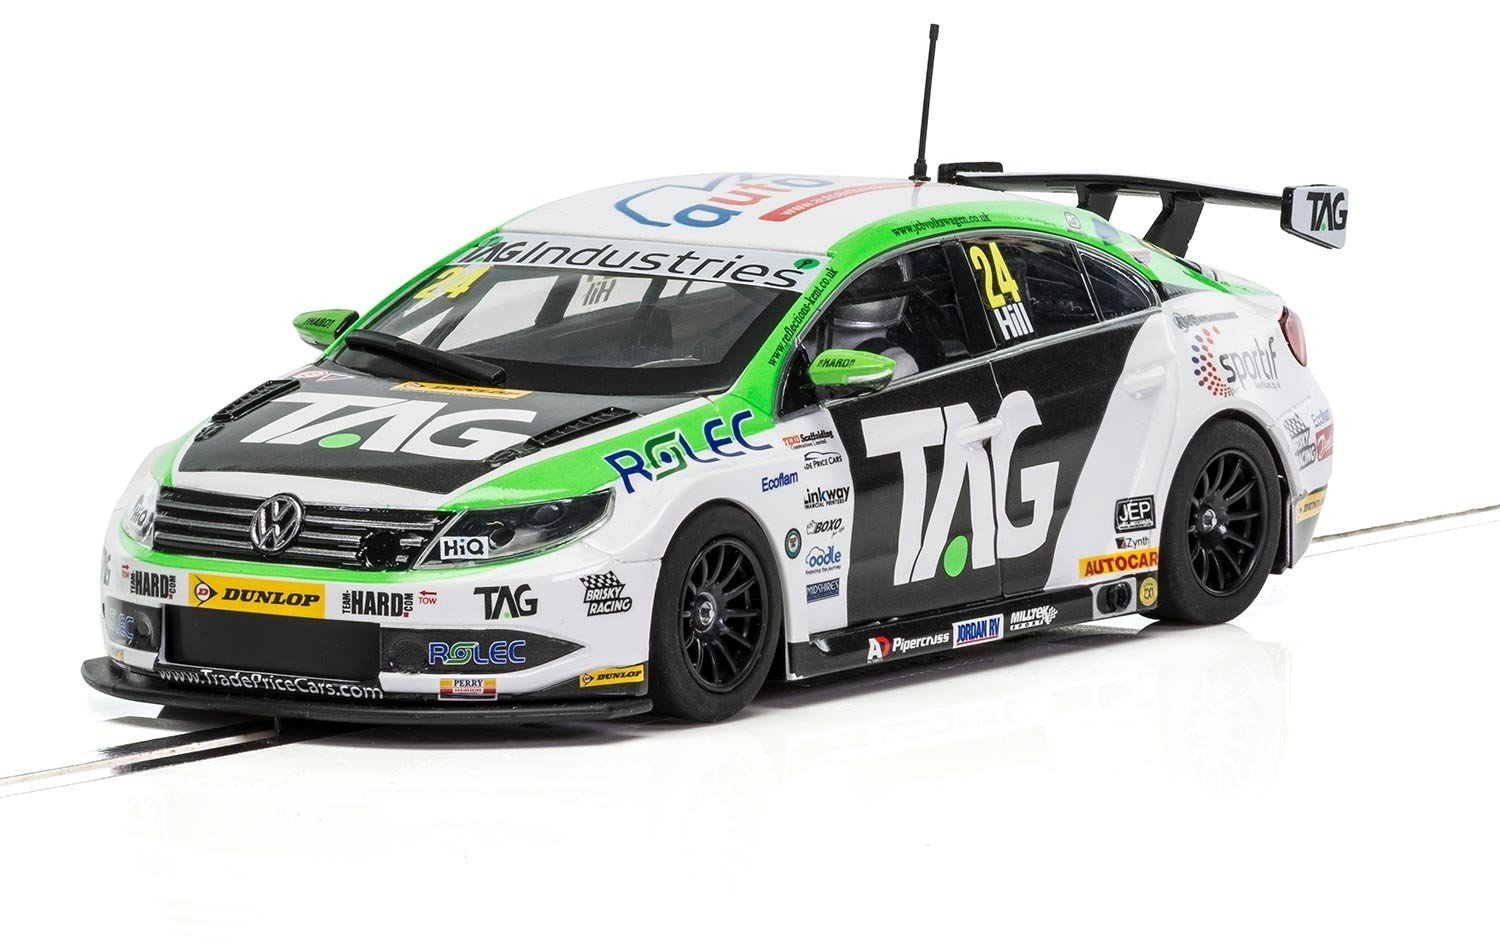 Scalextric C3918 VW Passat Ngtc Team Jack Hill Slot Car, 1: 32 Scale, White